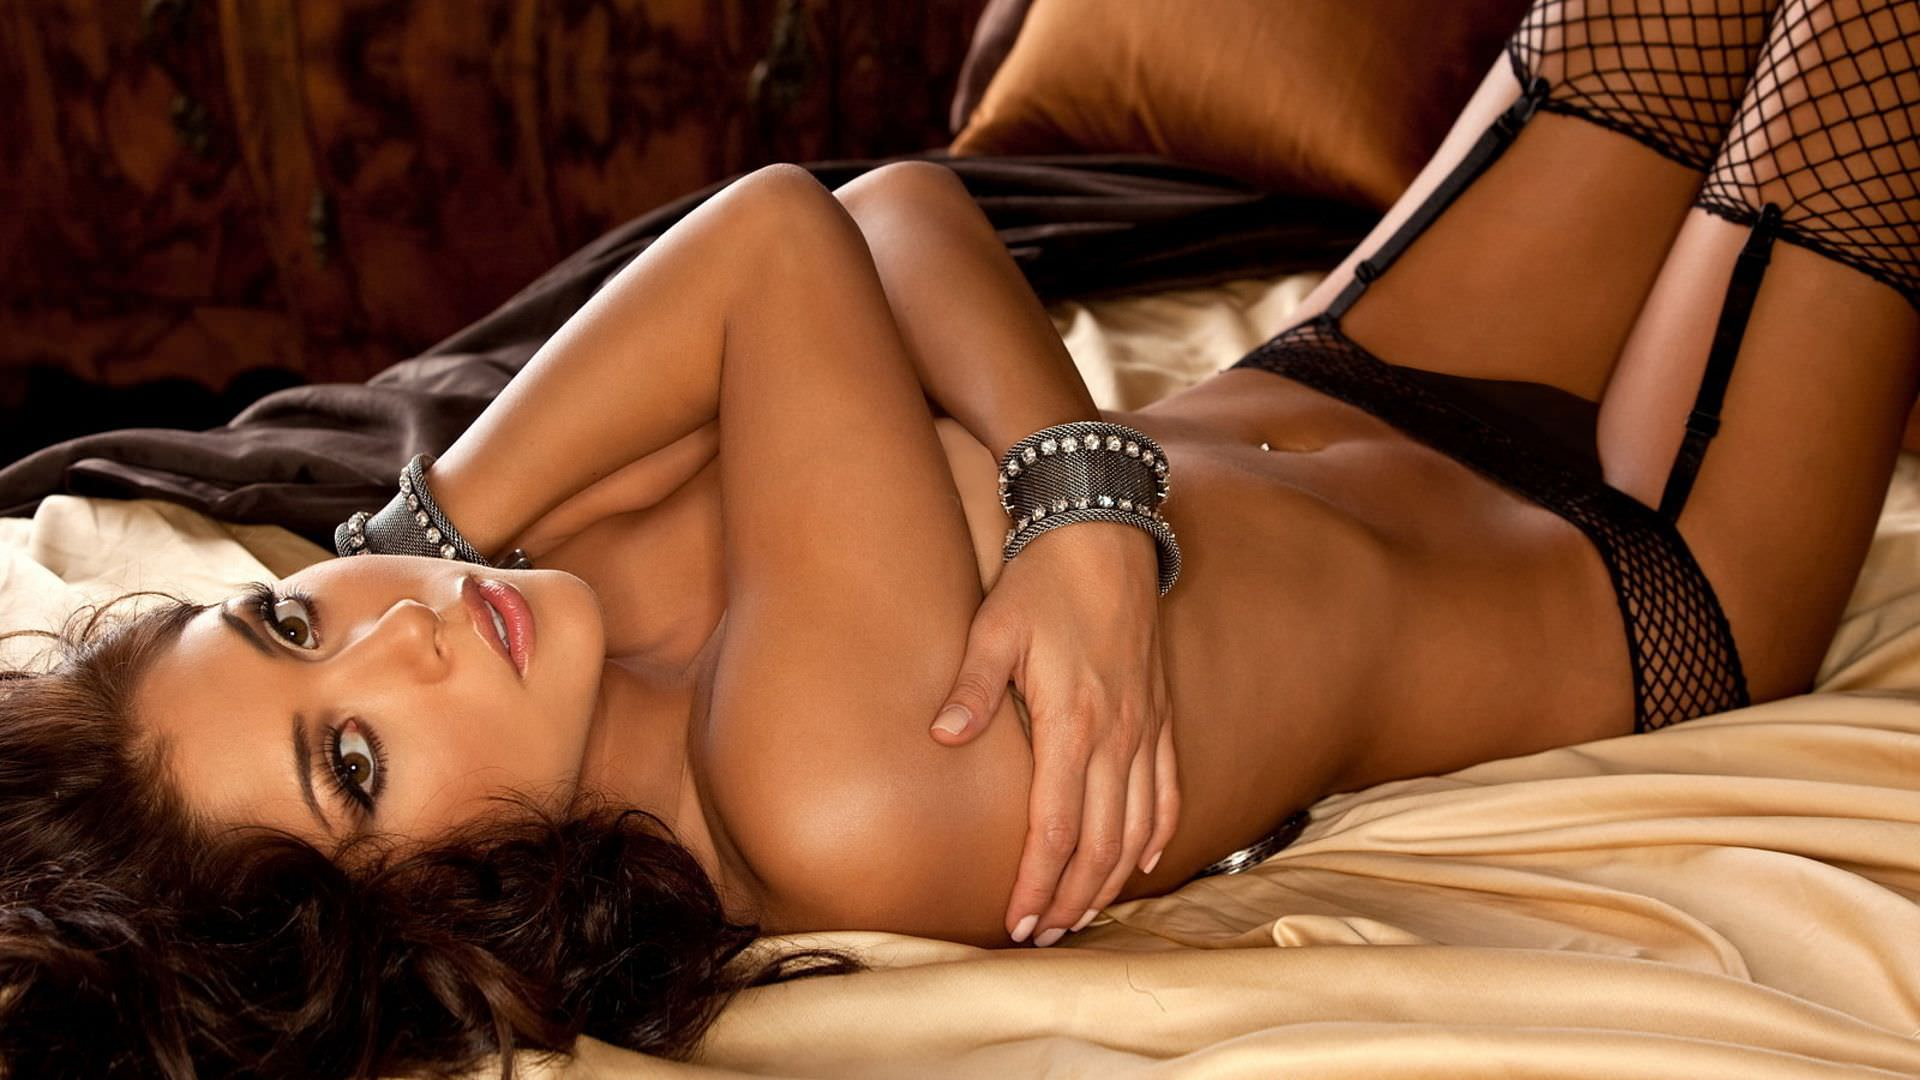 Hot lady sexsy some